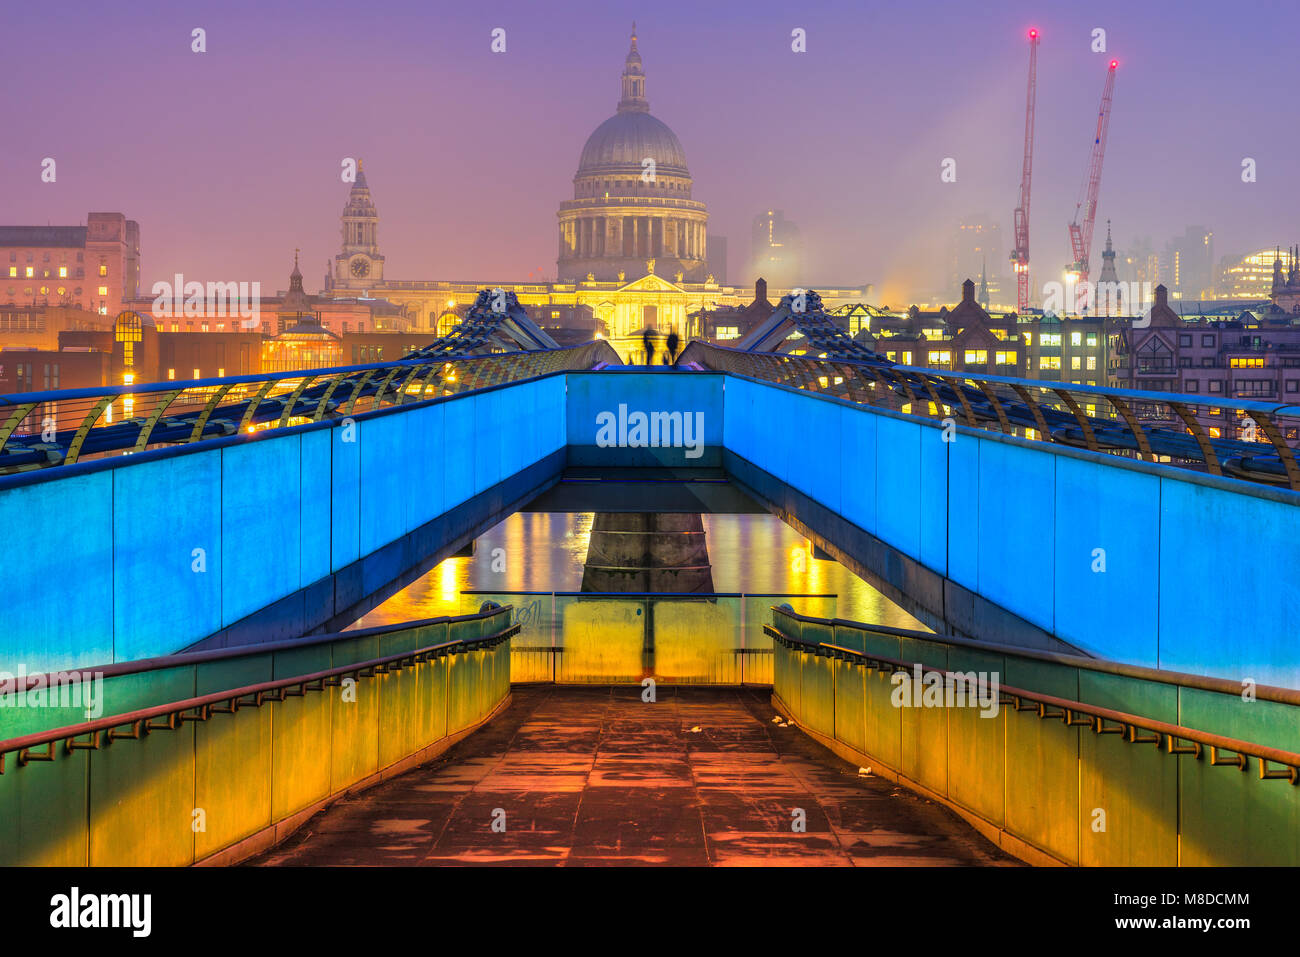 St. Pauls cathedral and Millennium Bridge, London, UK - Stock Image